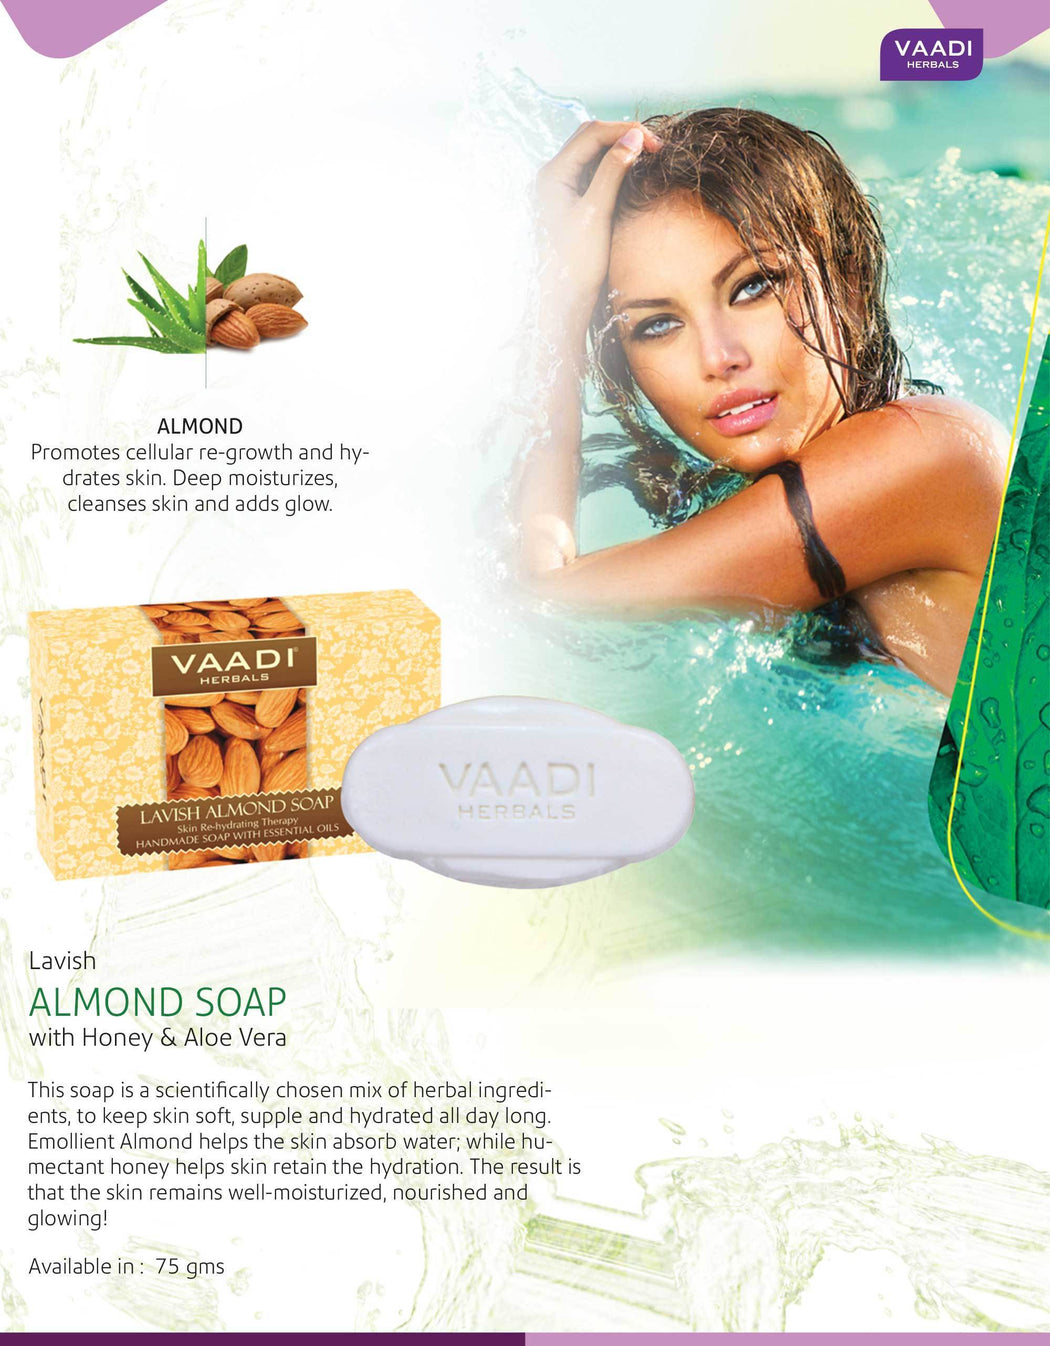 Rehydrating Organic Lavish Almond Soap with Honey & Aloe Vera - Improves Complexion - Keeps Skin Nourished (3 x 75 gms/2.7 oz)